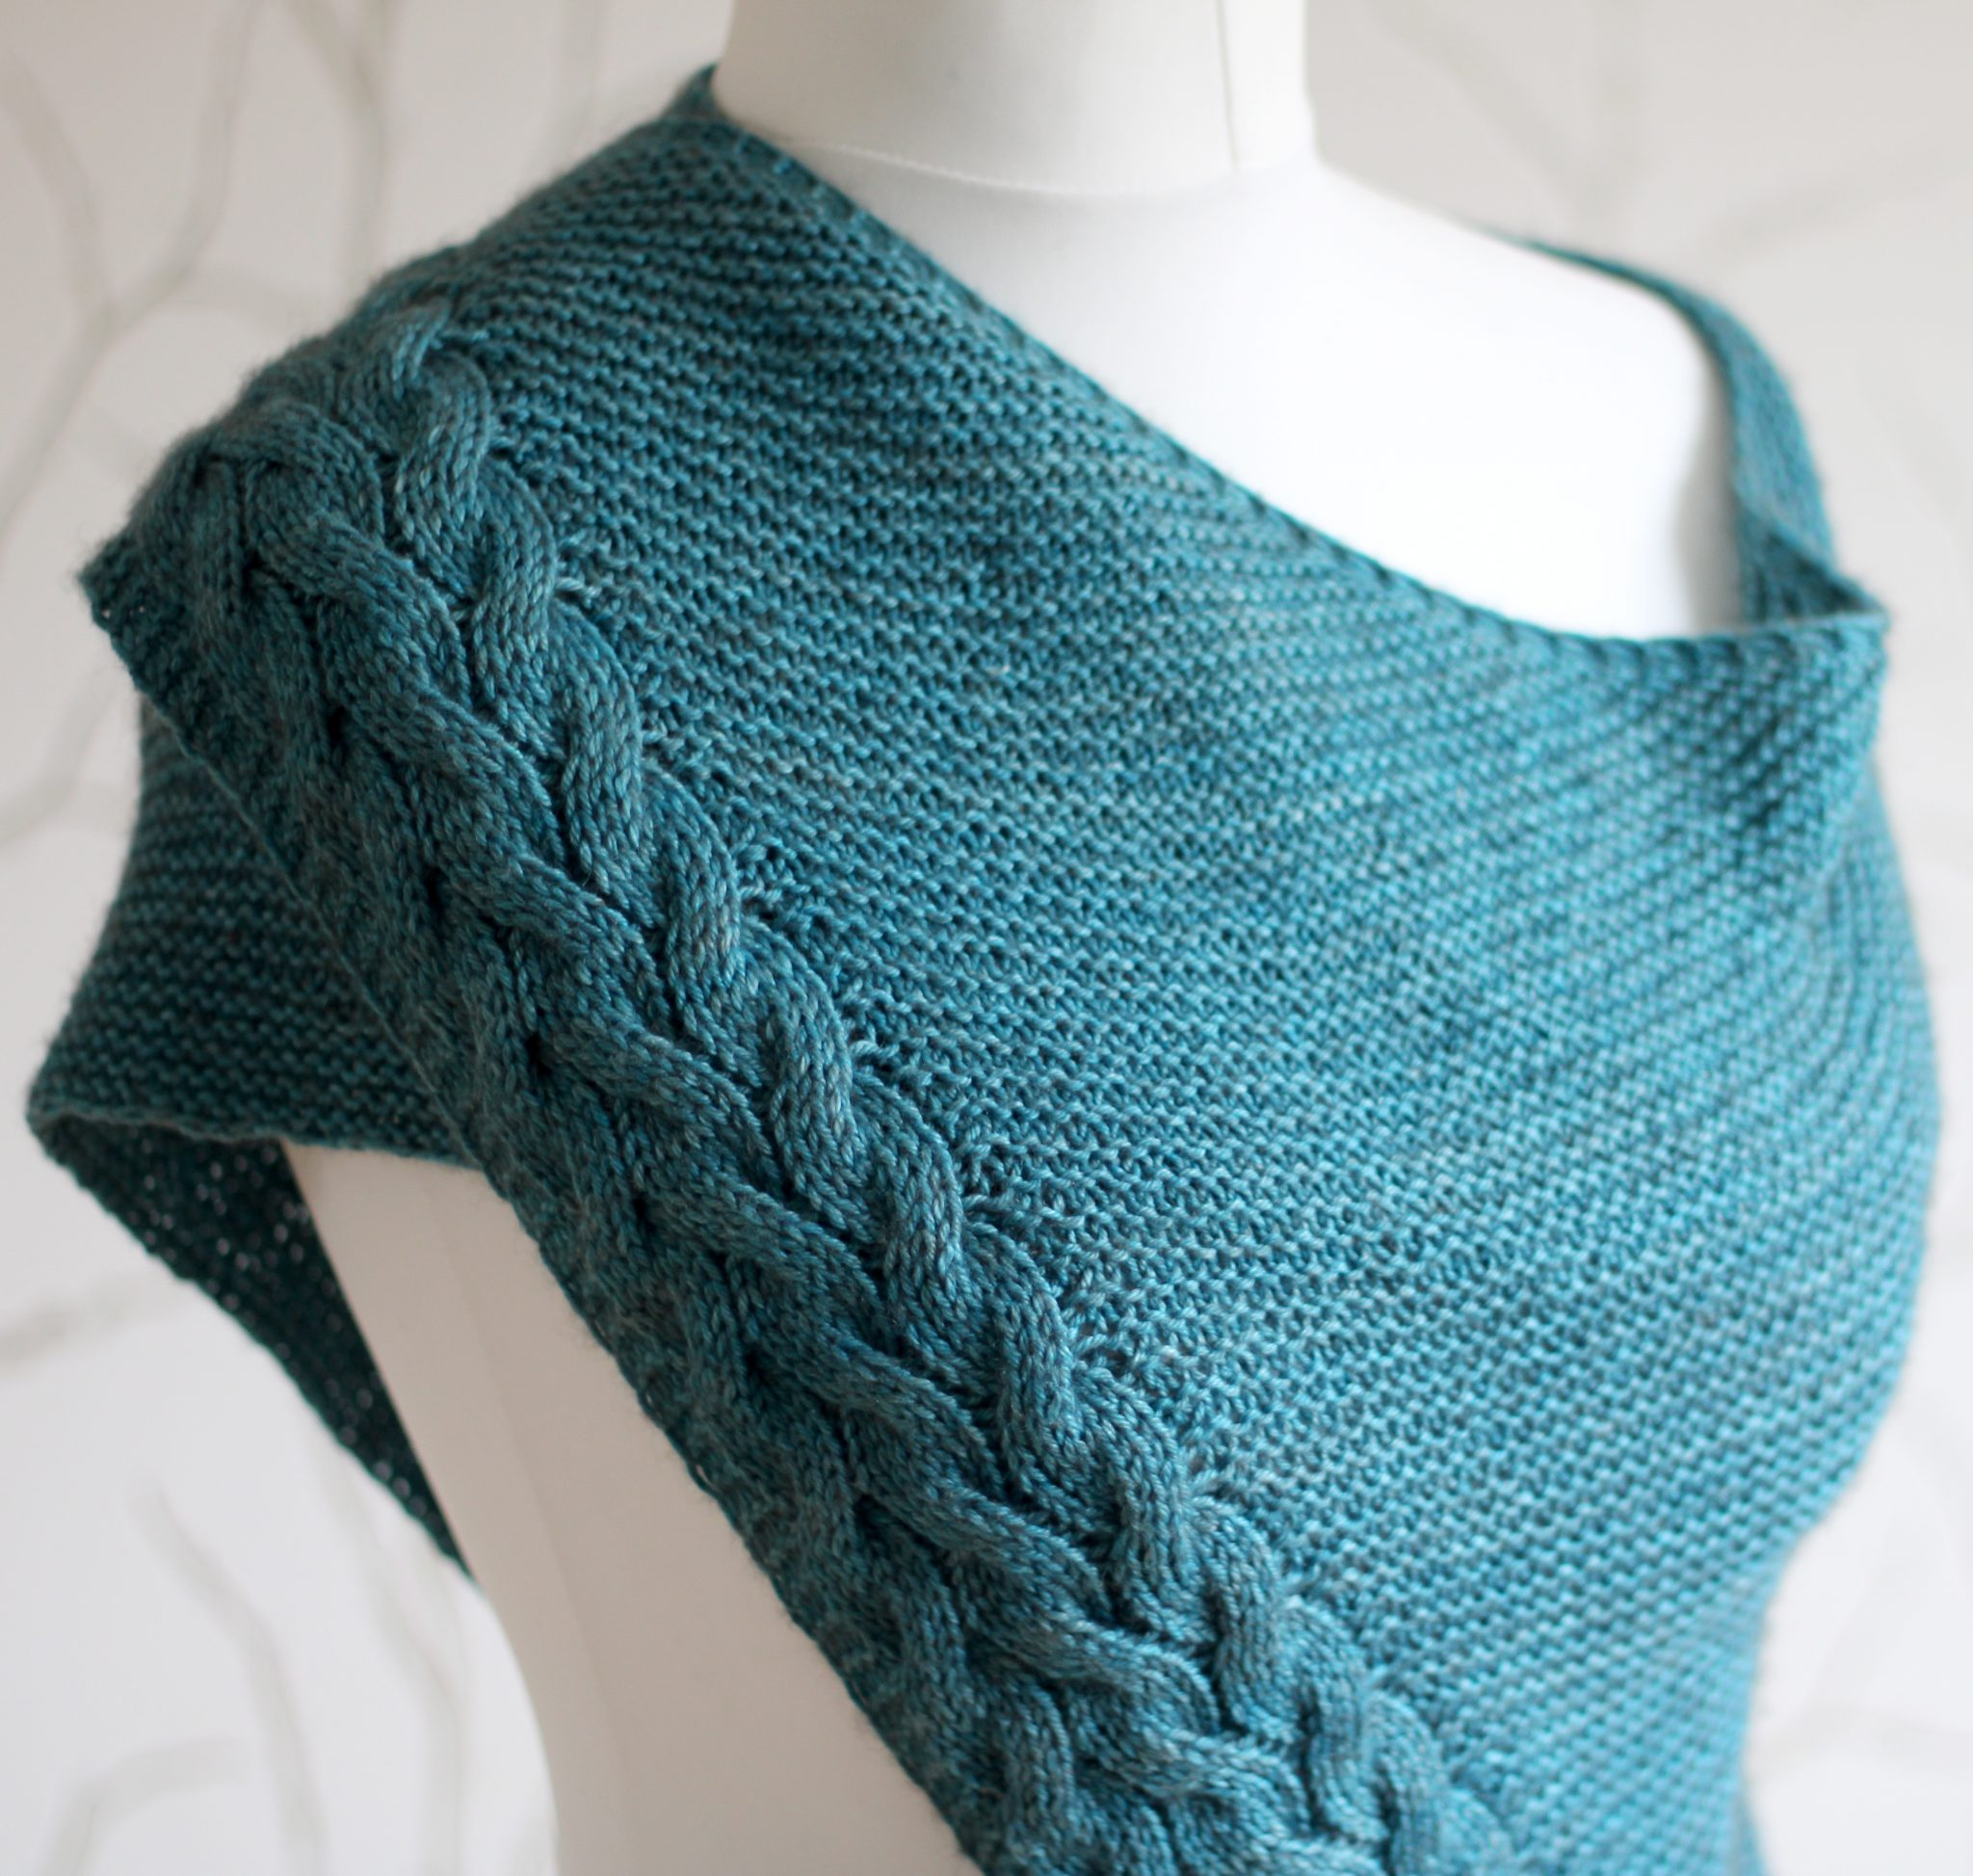 A blue garter stitch shawl with a rippling cable pattern down one side wrapped around a mannequin